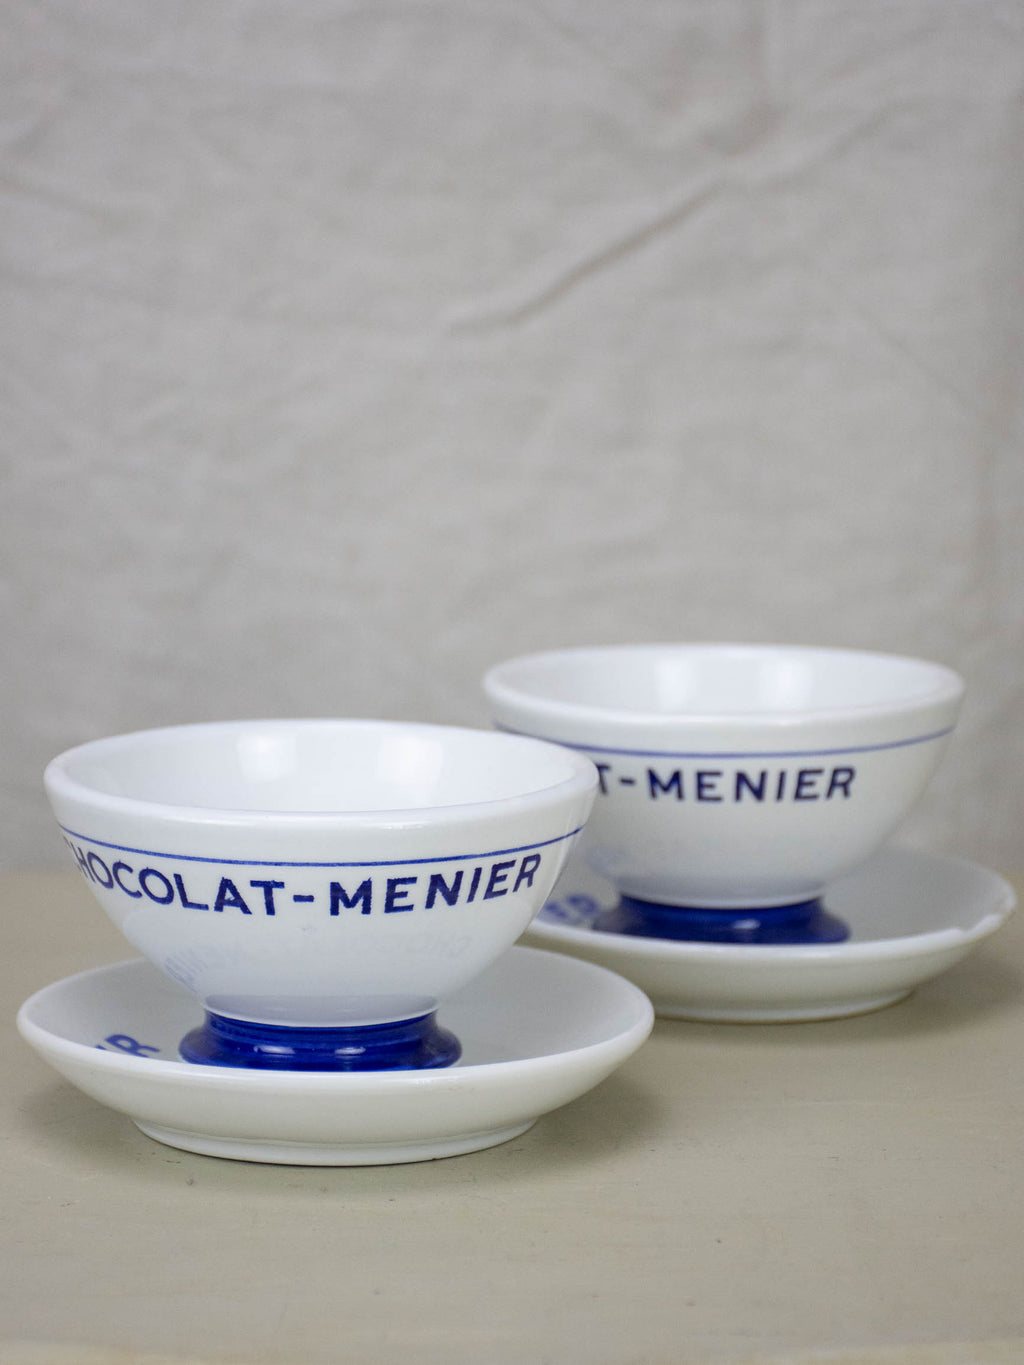 Chocolate Menier cups and saucers